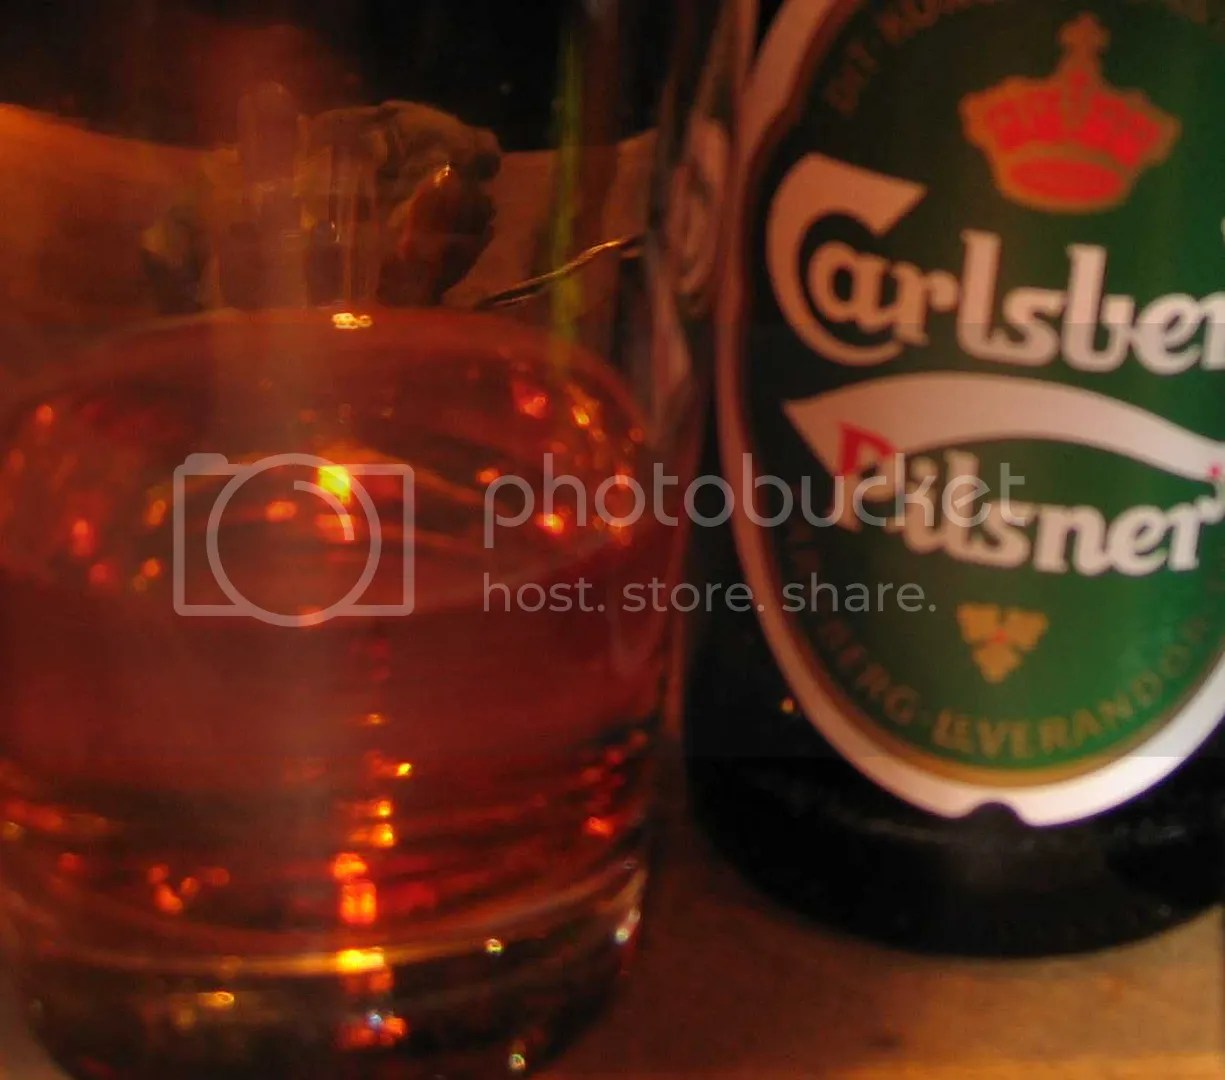 Carlsberg bottle and glass